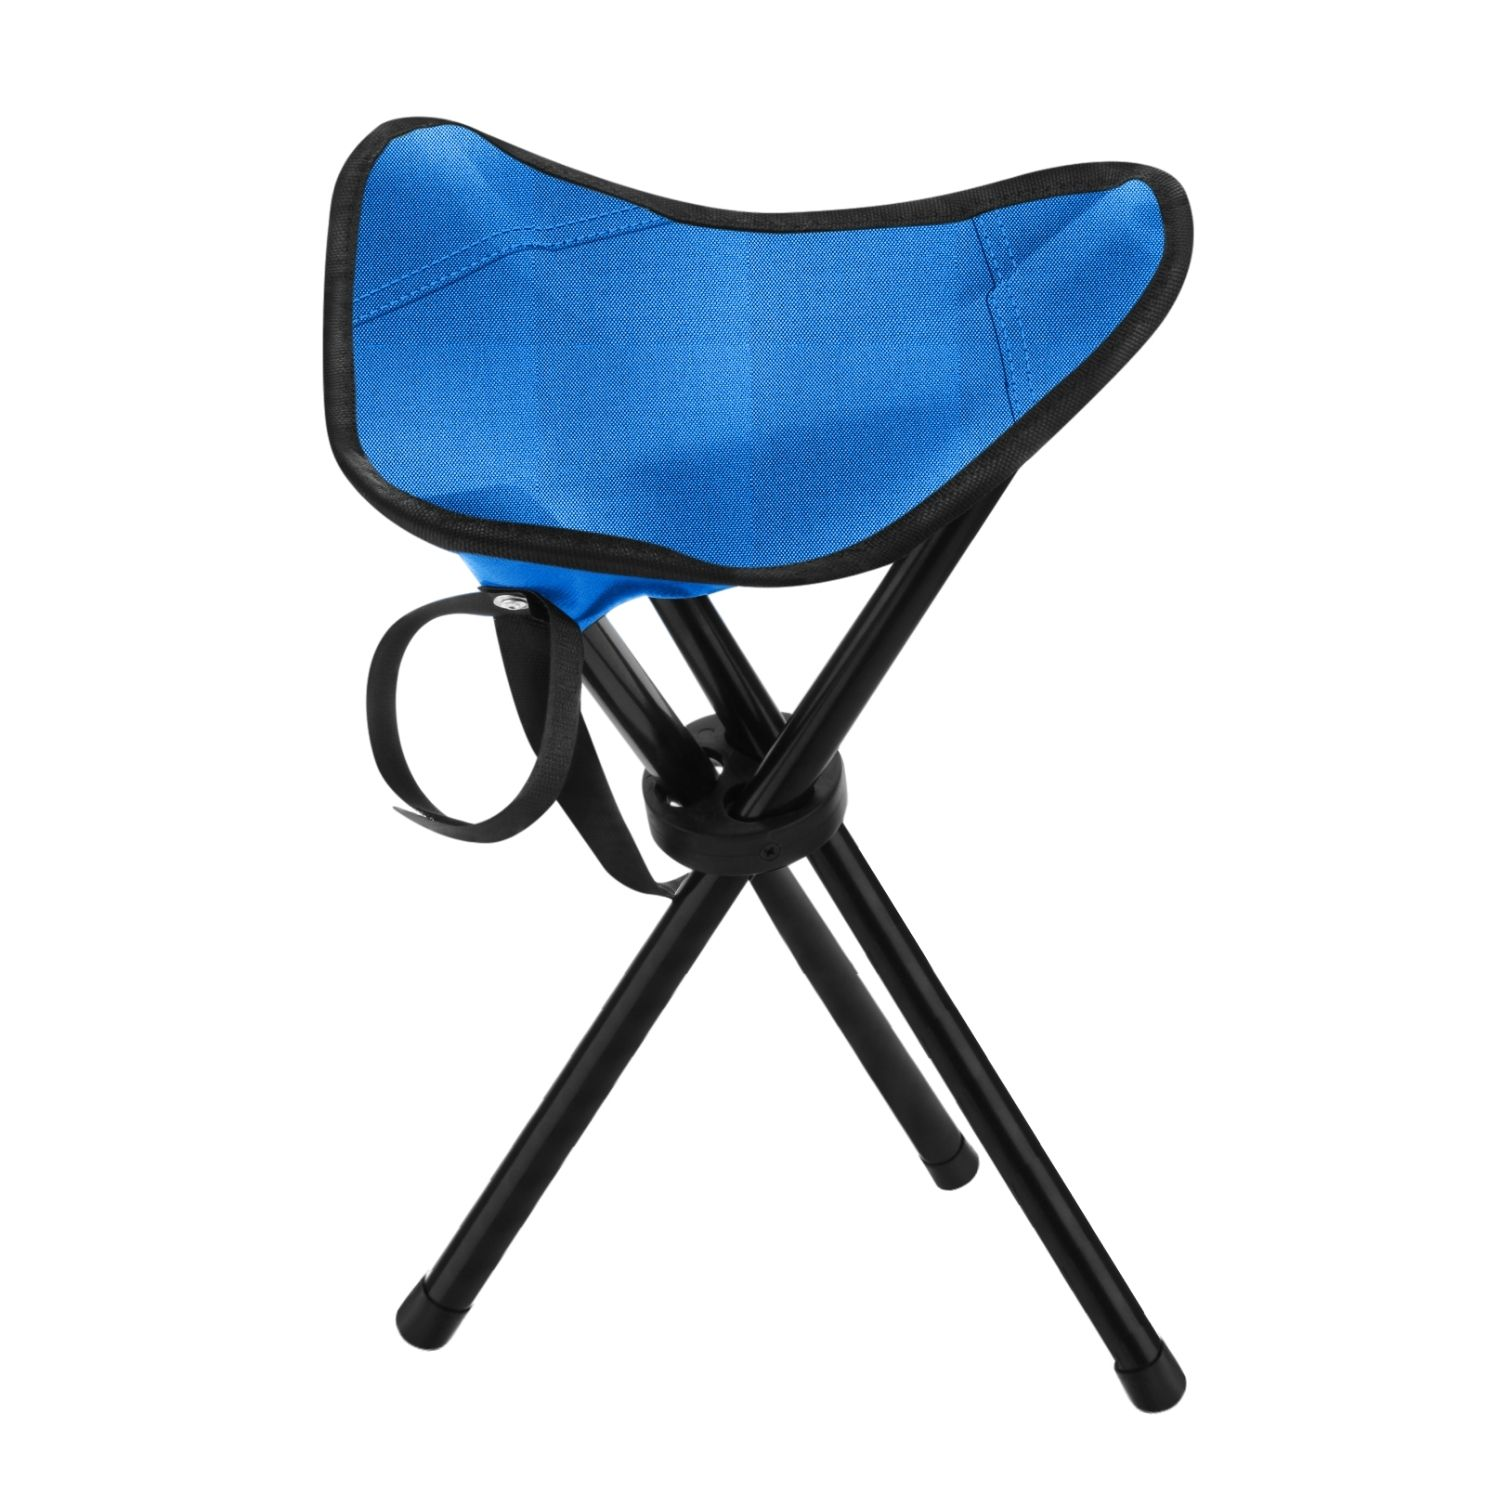 portable folding chairs foldable adirondack chair outdoor hiking fishing lawn pocket with 3 leg image is loading